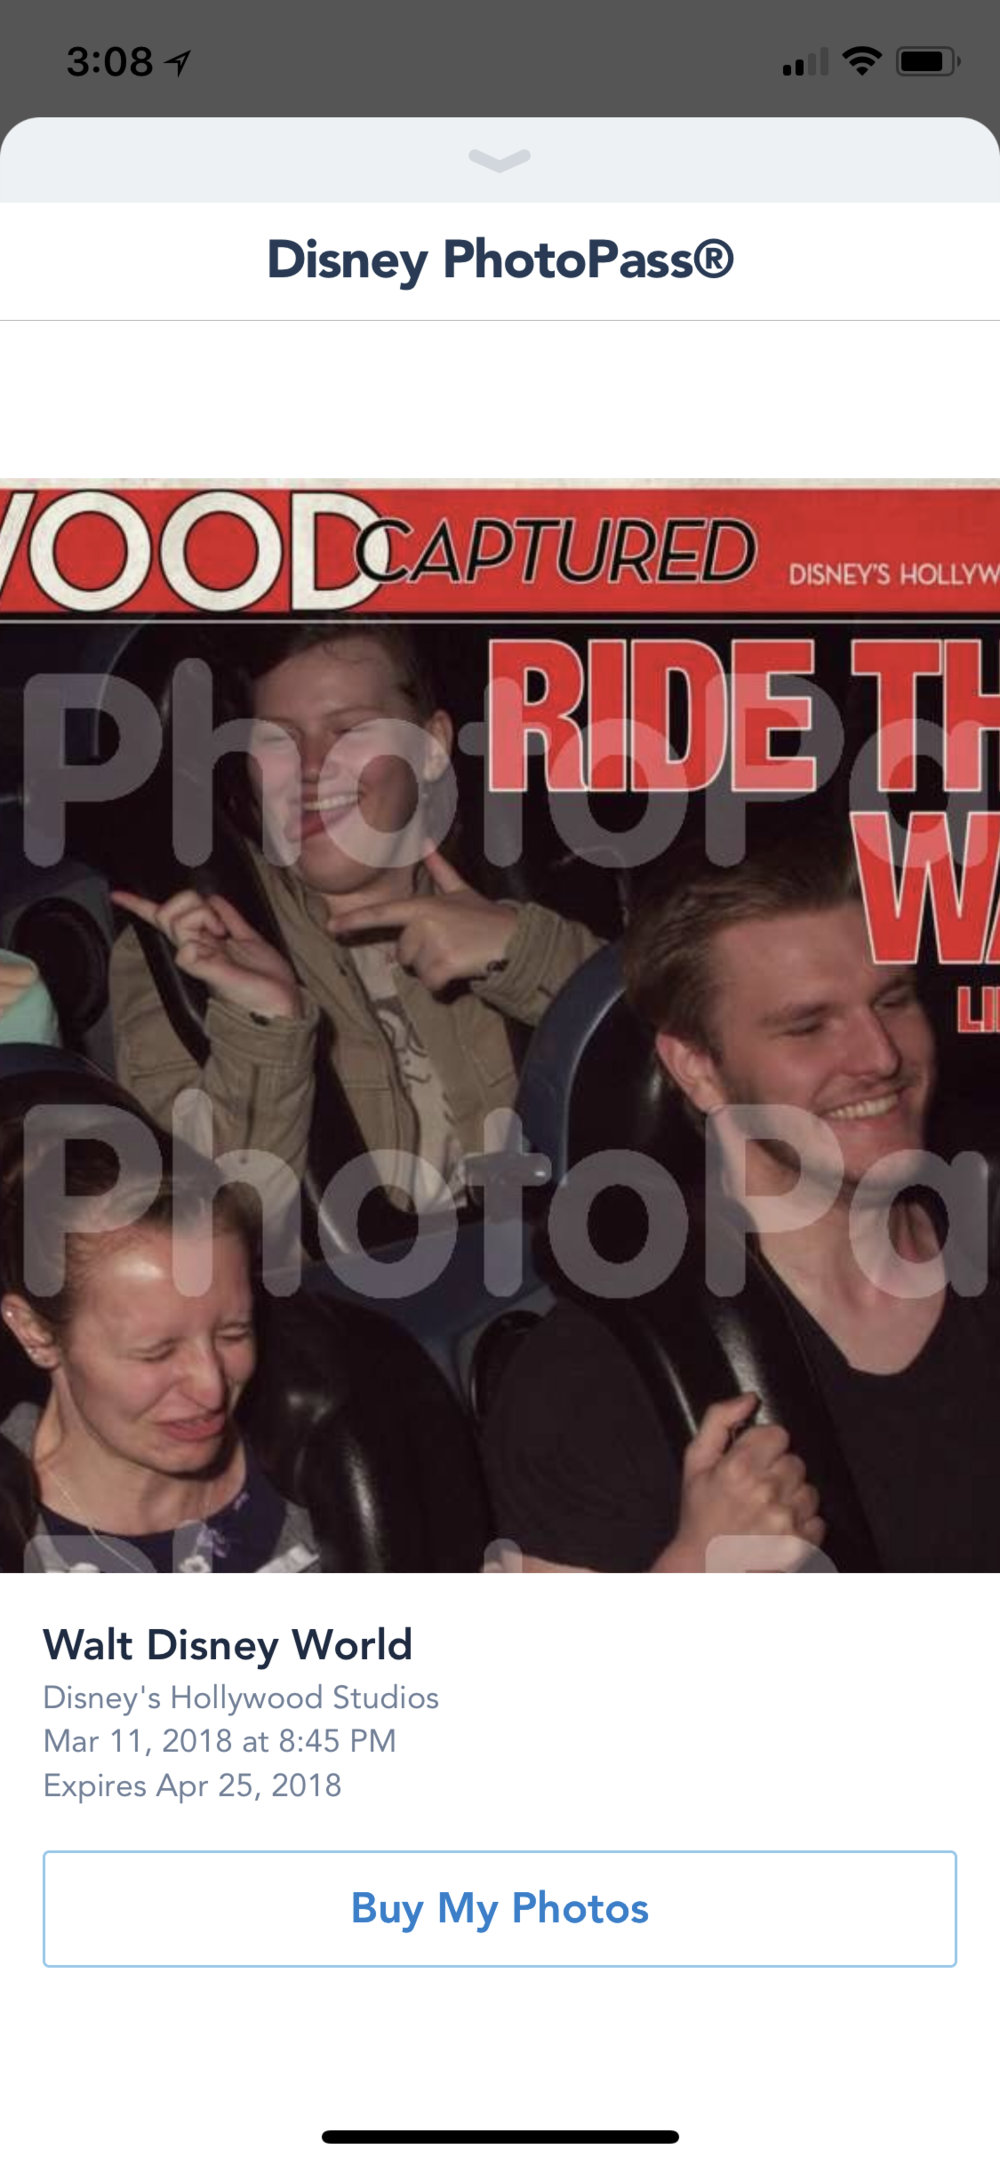 Ha, look at Aarica's face on Rock 'n Rollercoaster!